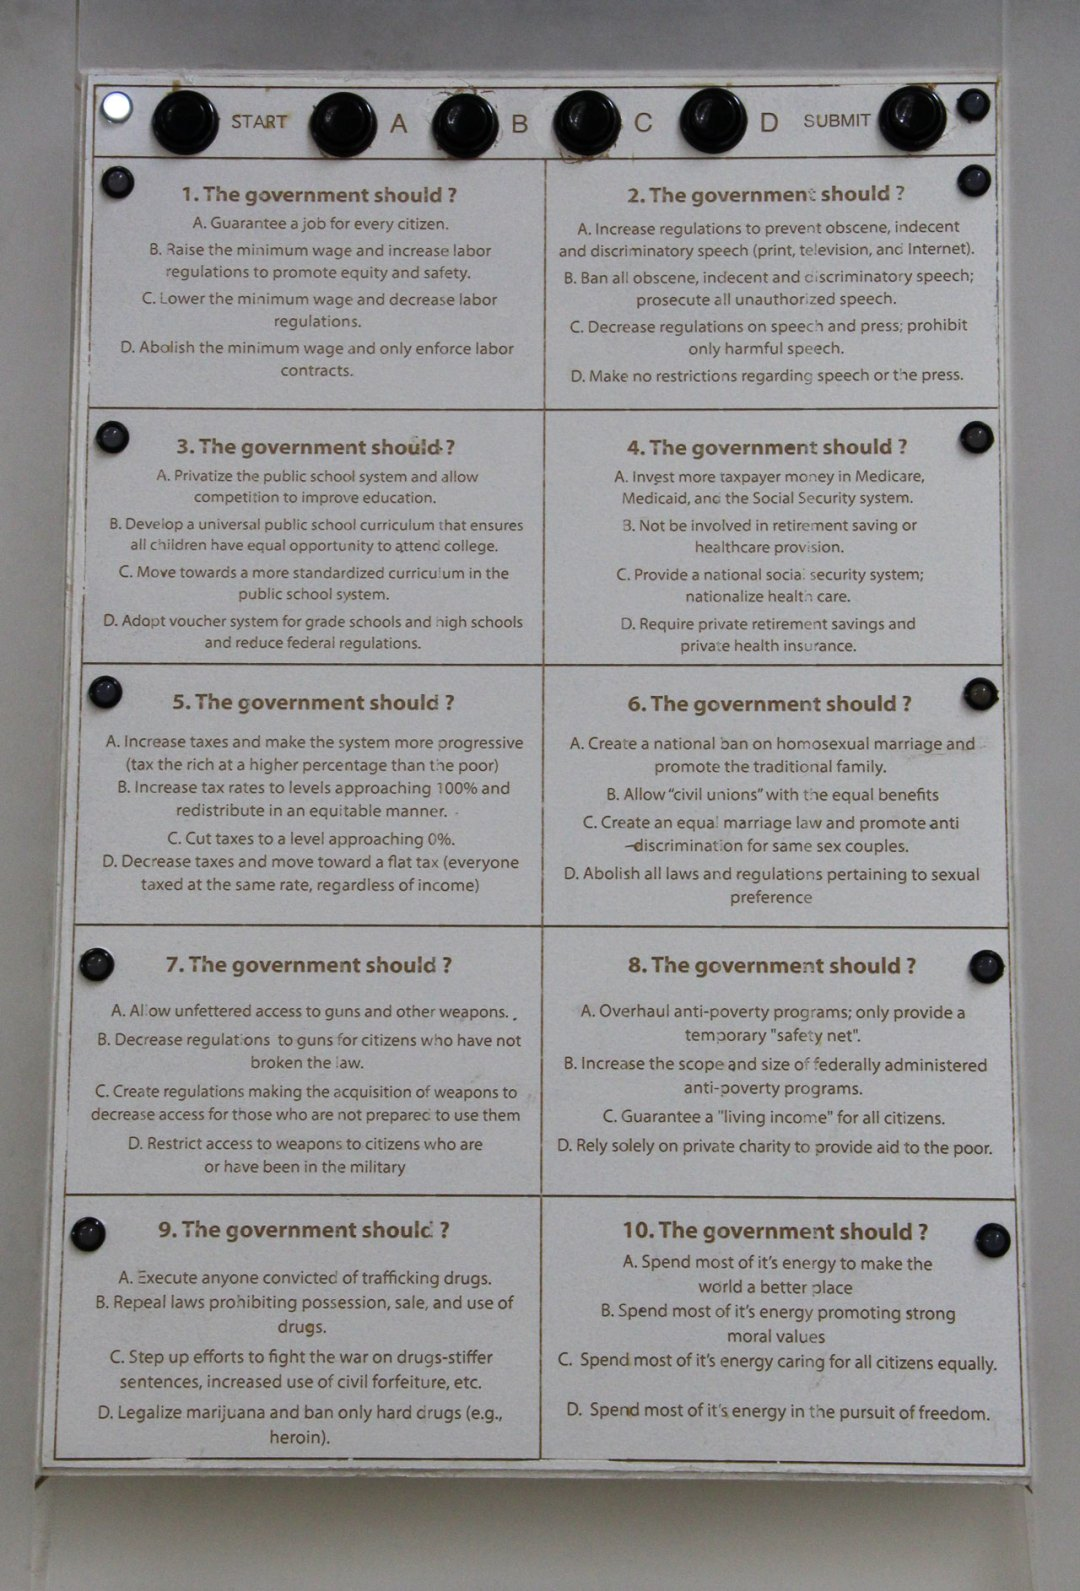 Close up of the questionnaire